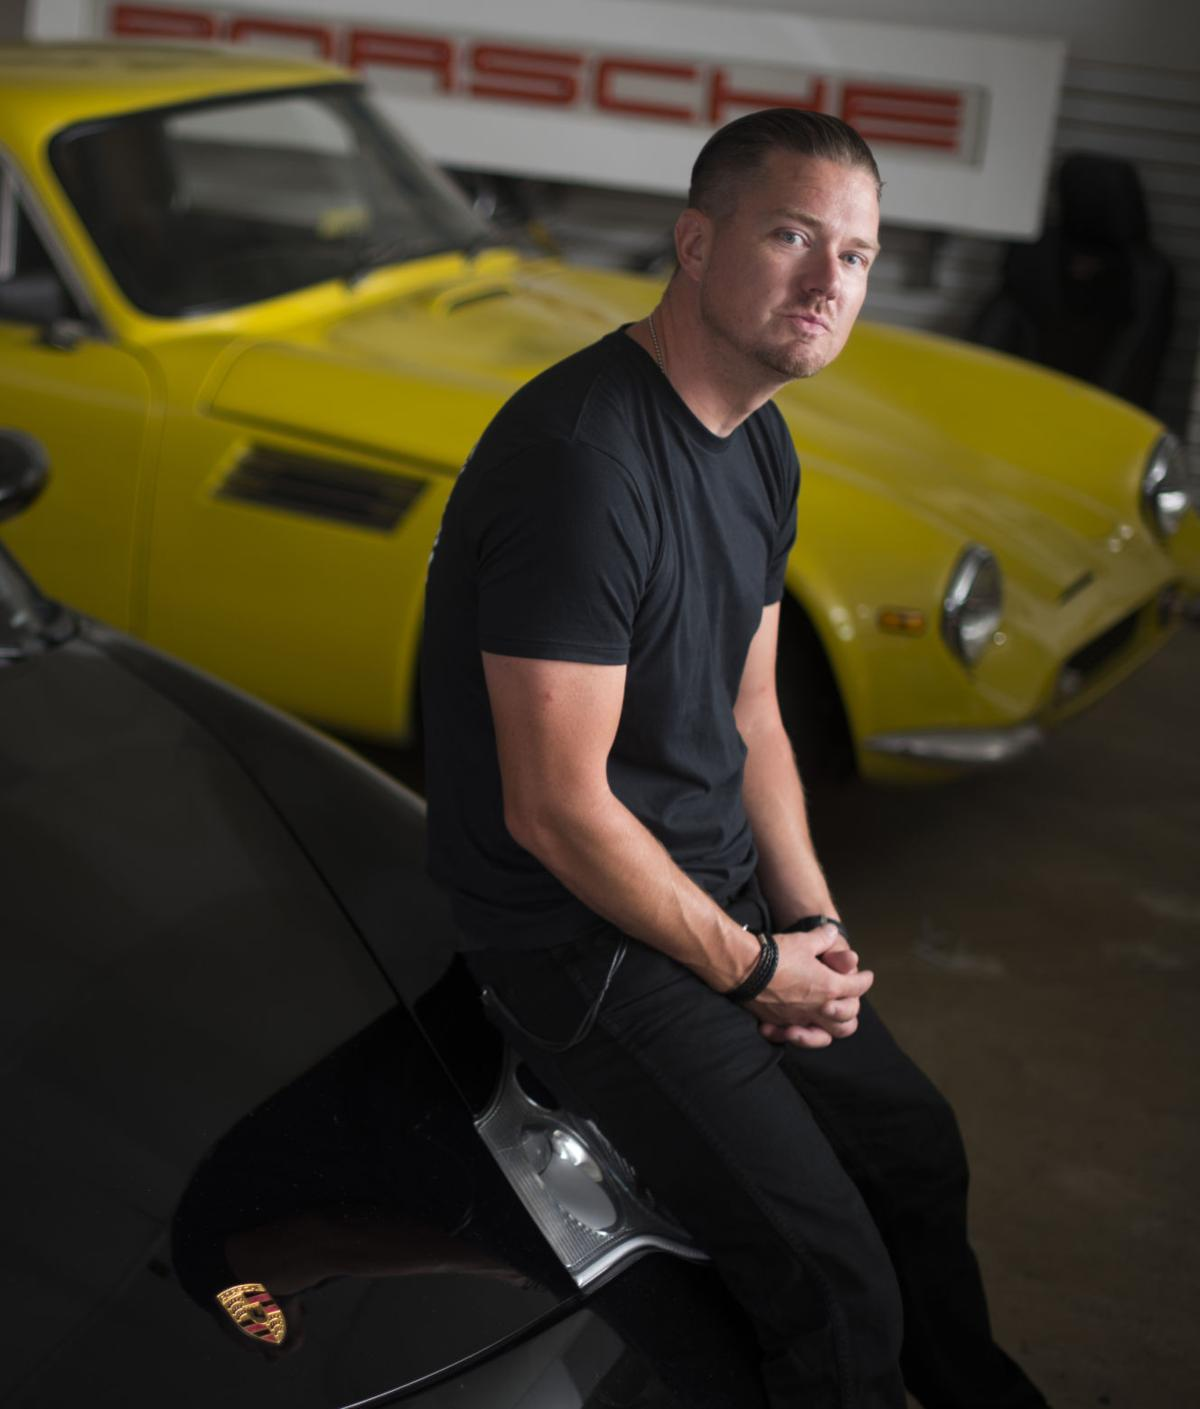 Local Mechanic Cohosts New Discovery Channel Reality Show Tv - New car show on discovery channel